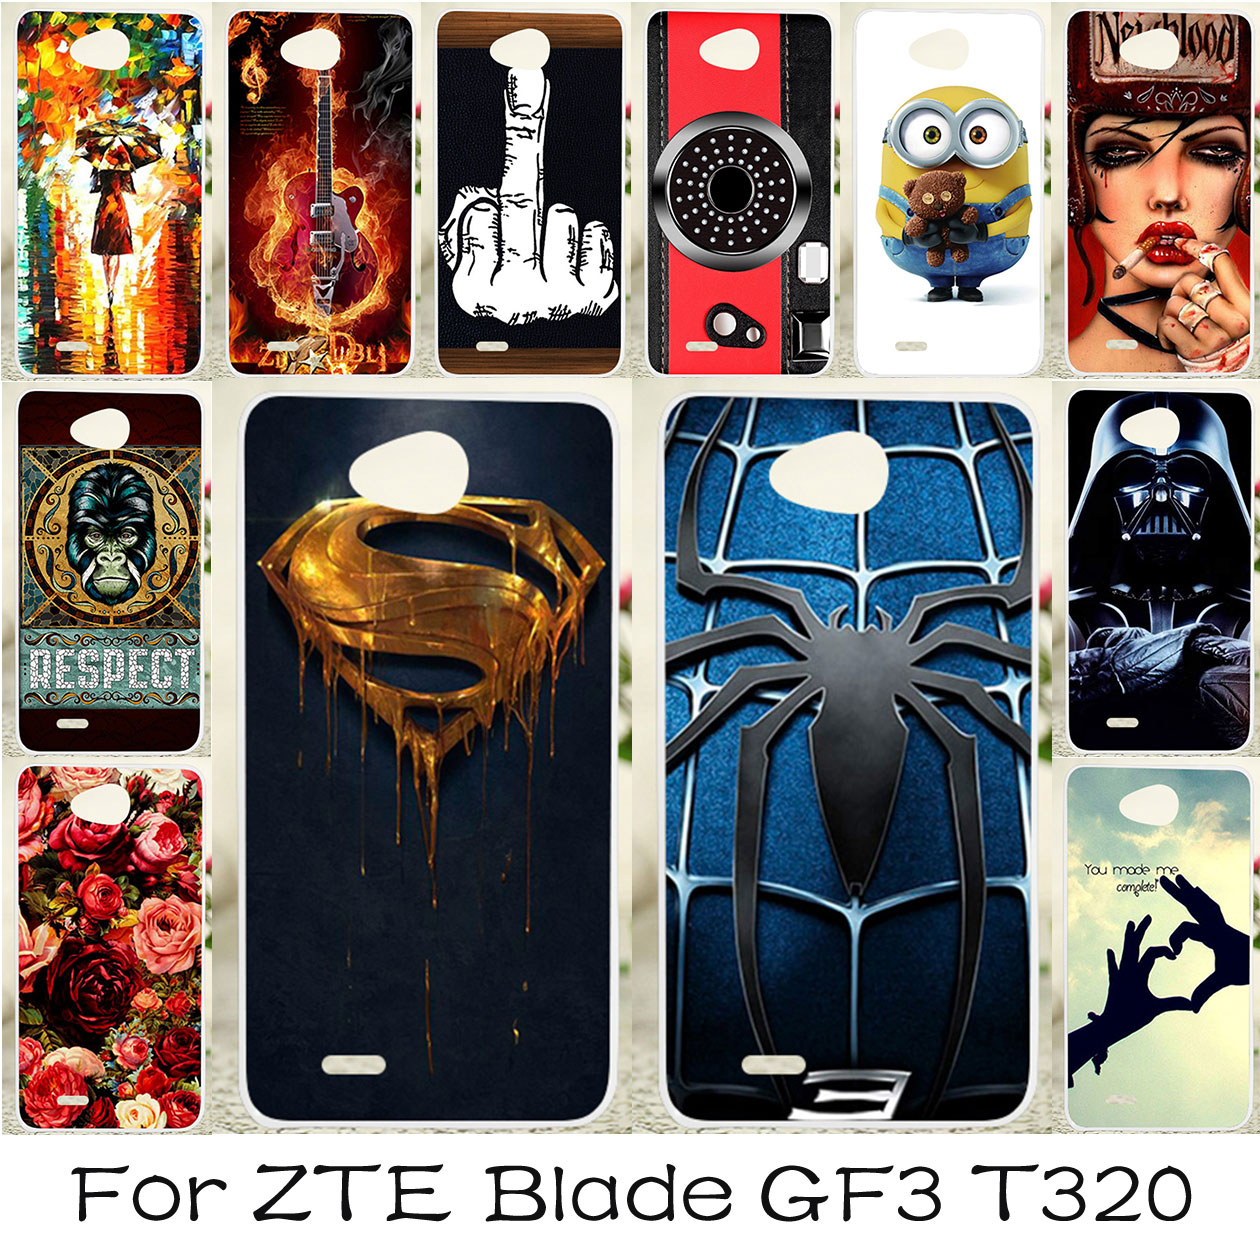 TAOYUNXI <font><b>Soft</b></font> TPU Case For ZTE Blade GF3 Cases Silicone Anti-knock Patterned Cover For ZTE Blade T320 Covers <font><b>Spiderman</b></font> Skin